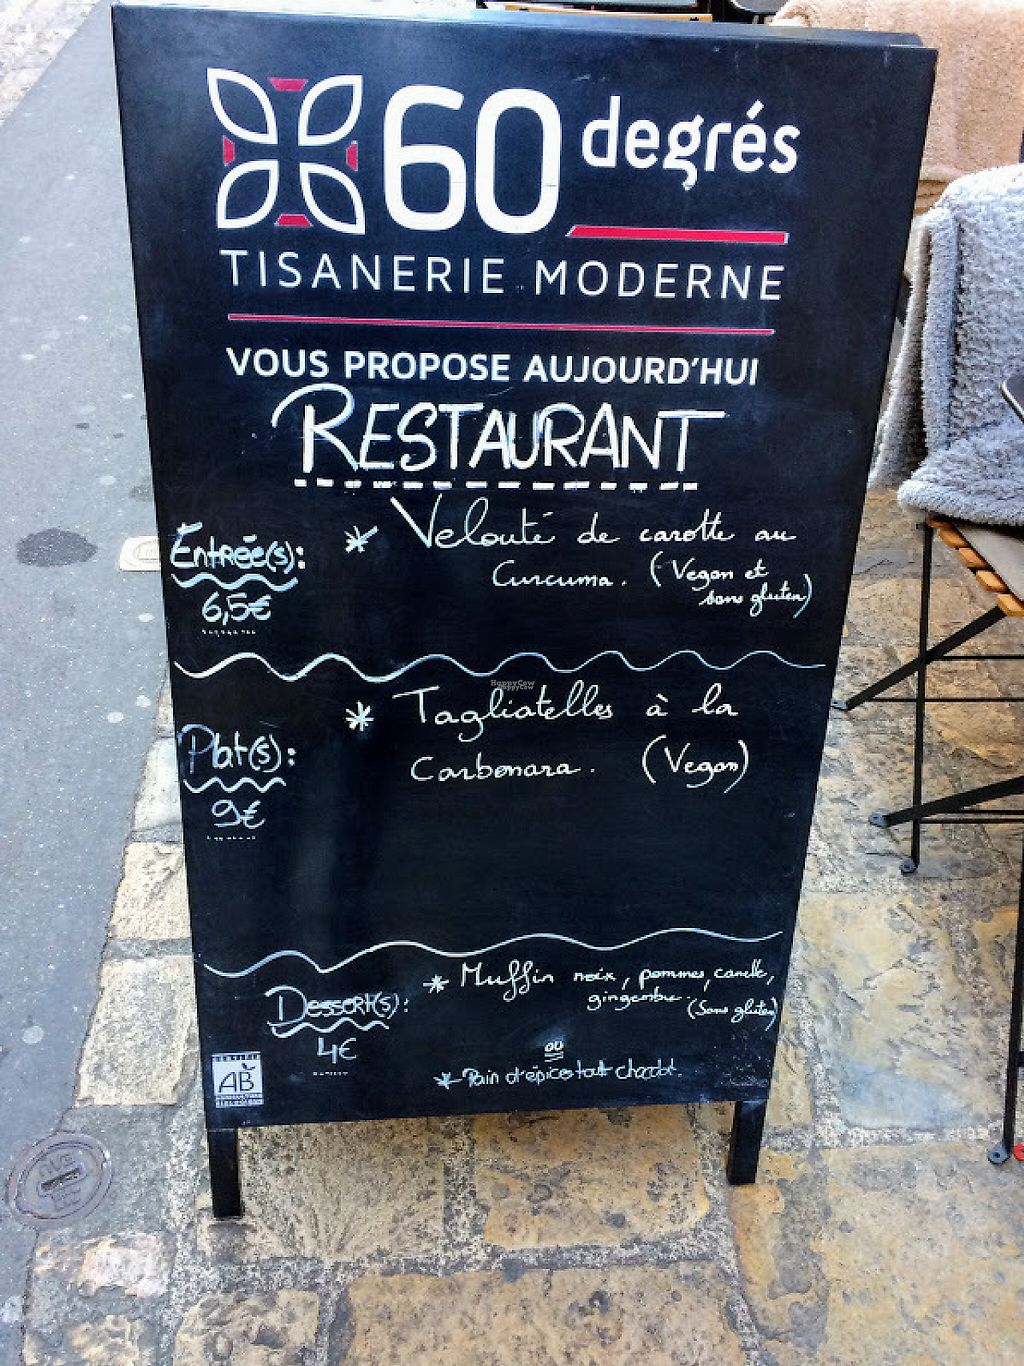 "Photo of 60 Degres Tisanerie Moderne  by <a href=""/members/profile/sophiecow"">sophiecow</a> <br/>Menu Board, 16 January 2017 <br/> January 29, 2017  - <a href='/contact/abuse/image/83263/218884'>Report</a>"